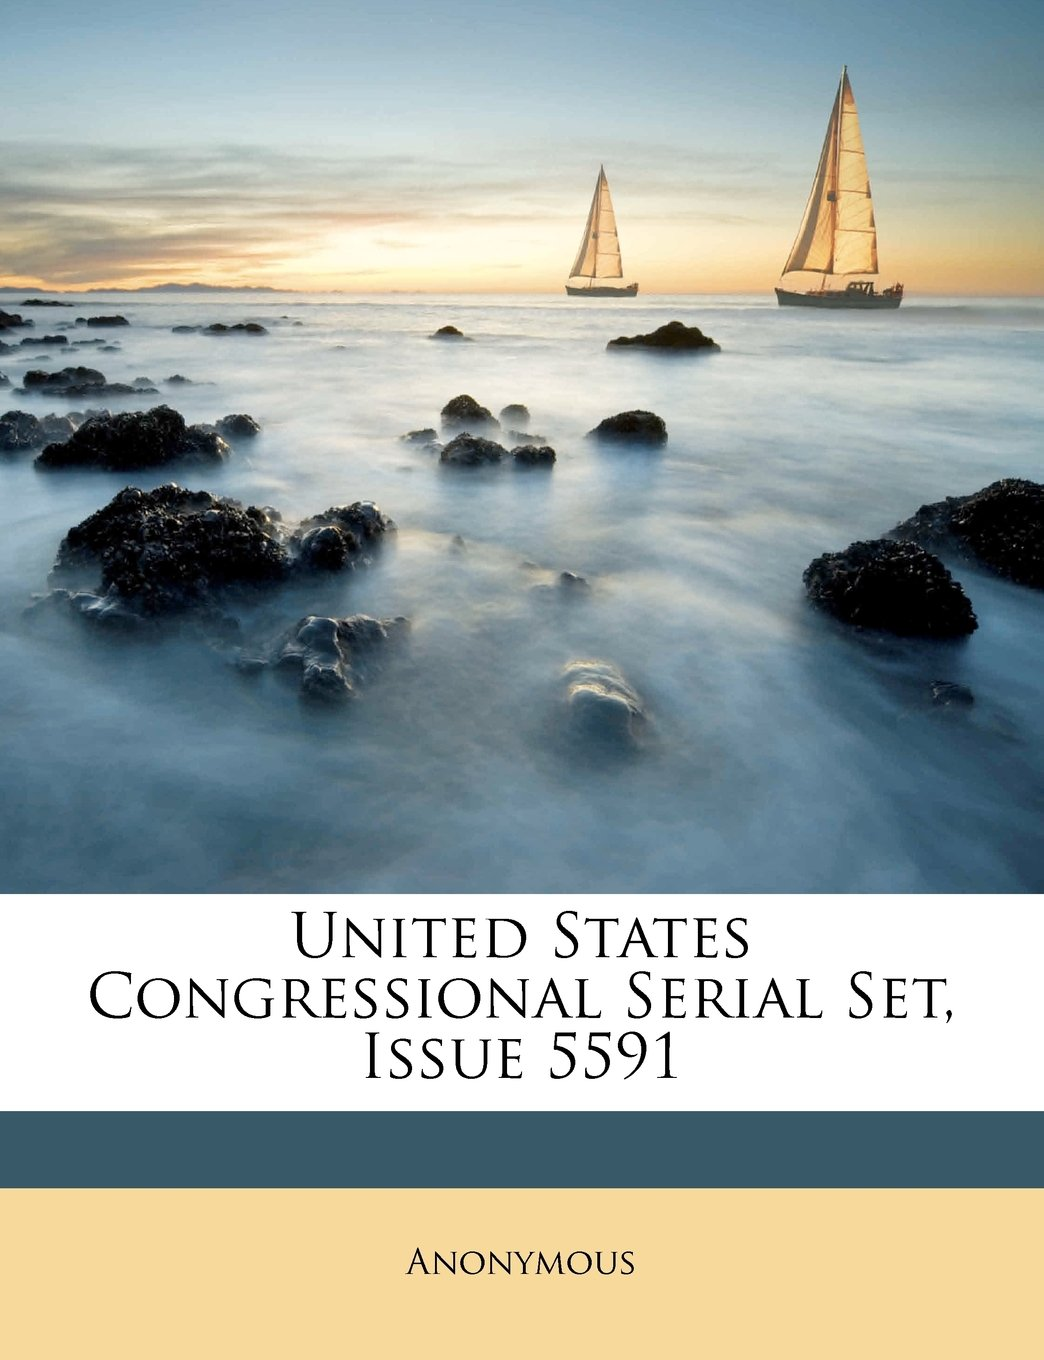 United States Congressional Serial Set, Issue 5591 ebook